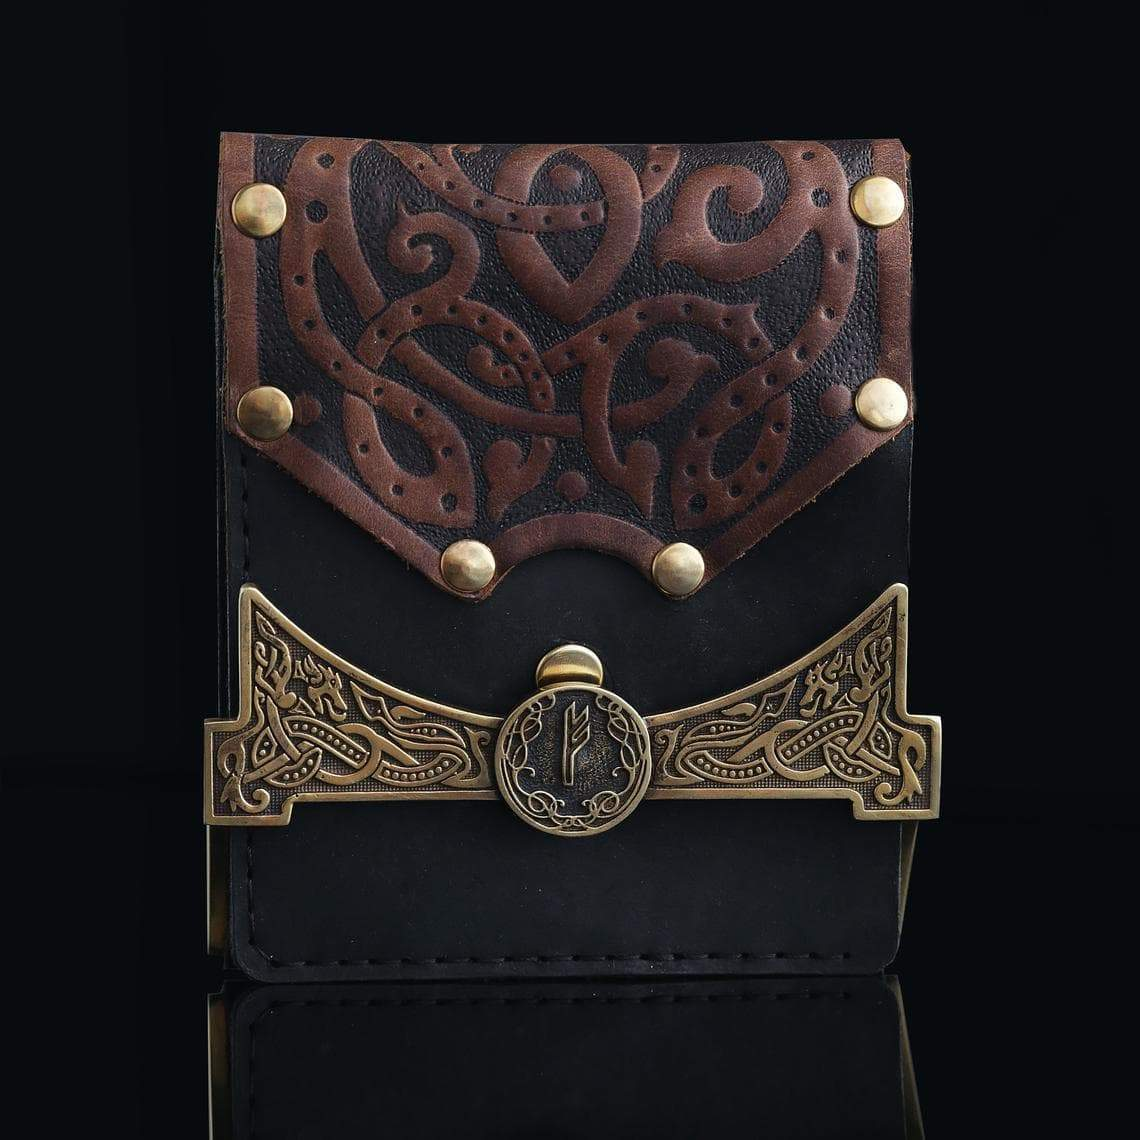 Wallets Viking Leather Wallet with Rune Fehu Metal Buckle Ancient Treasures Ancientreasures Viking Odin Thor Mjolnir Celtic Ancient Egypt Norse Norse Mythology